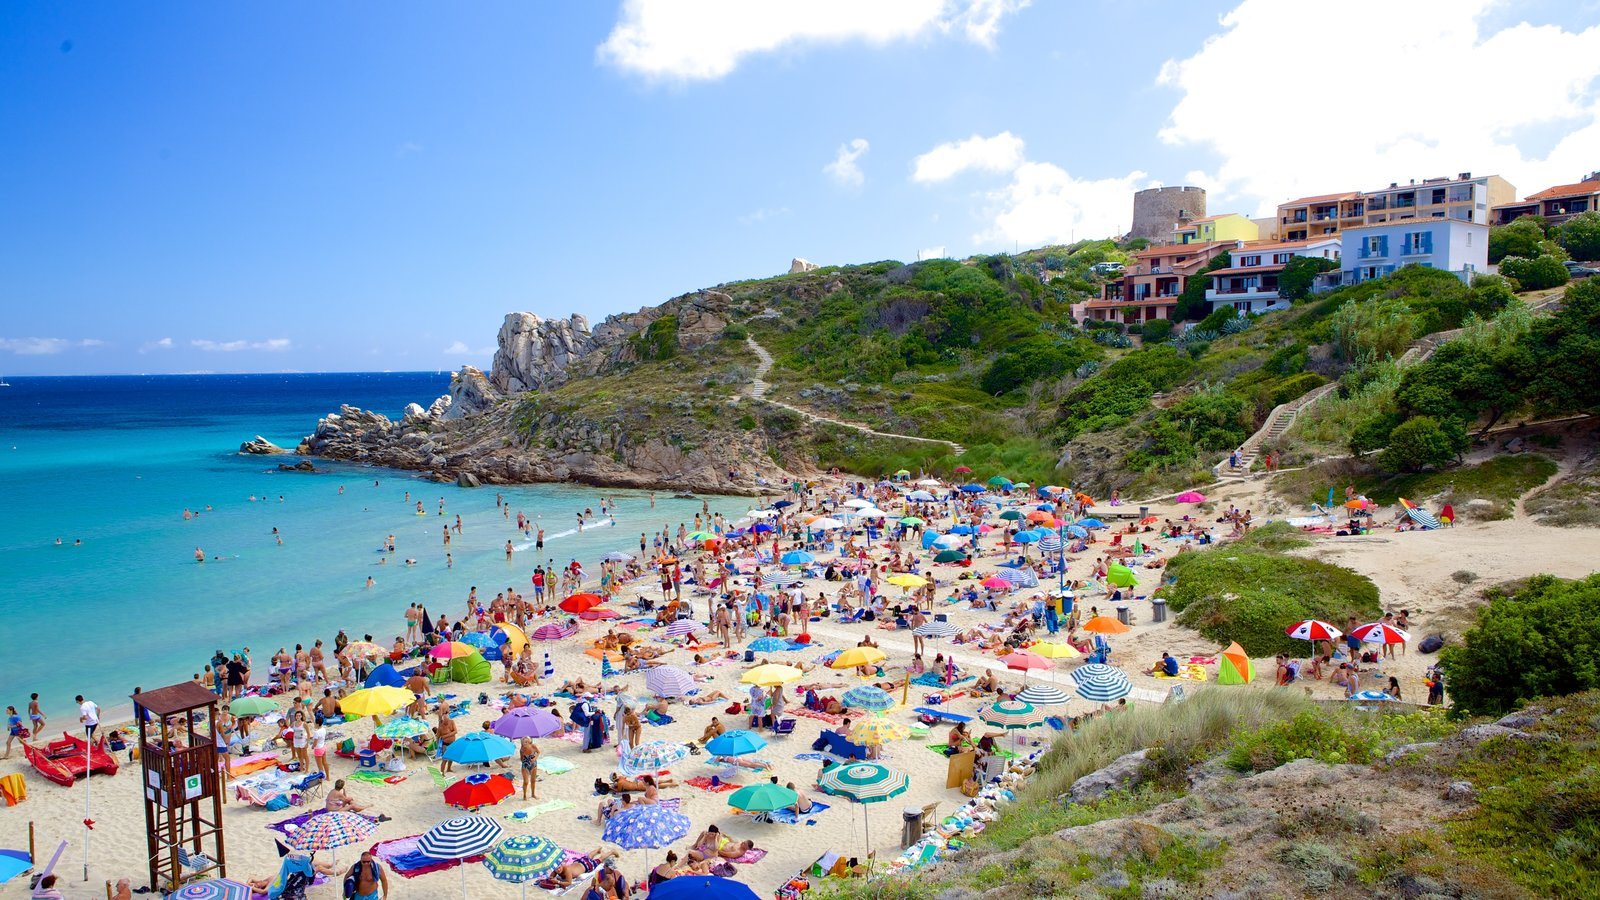 Santa Teresa di Gallura featuring a sandy beach as well as a large group of people